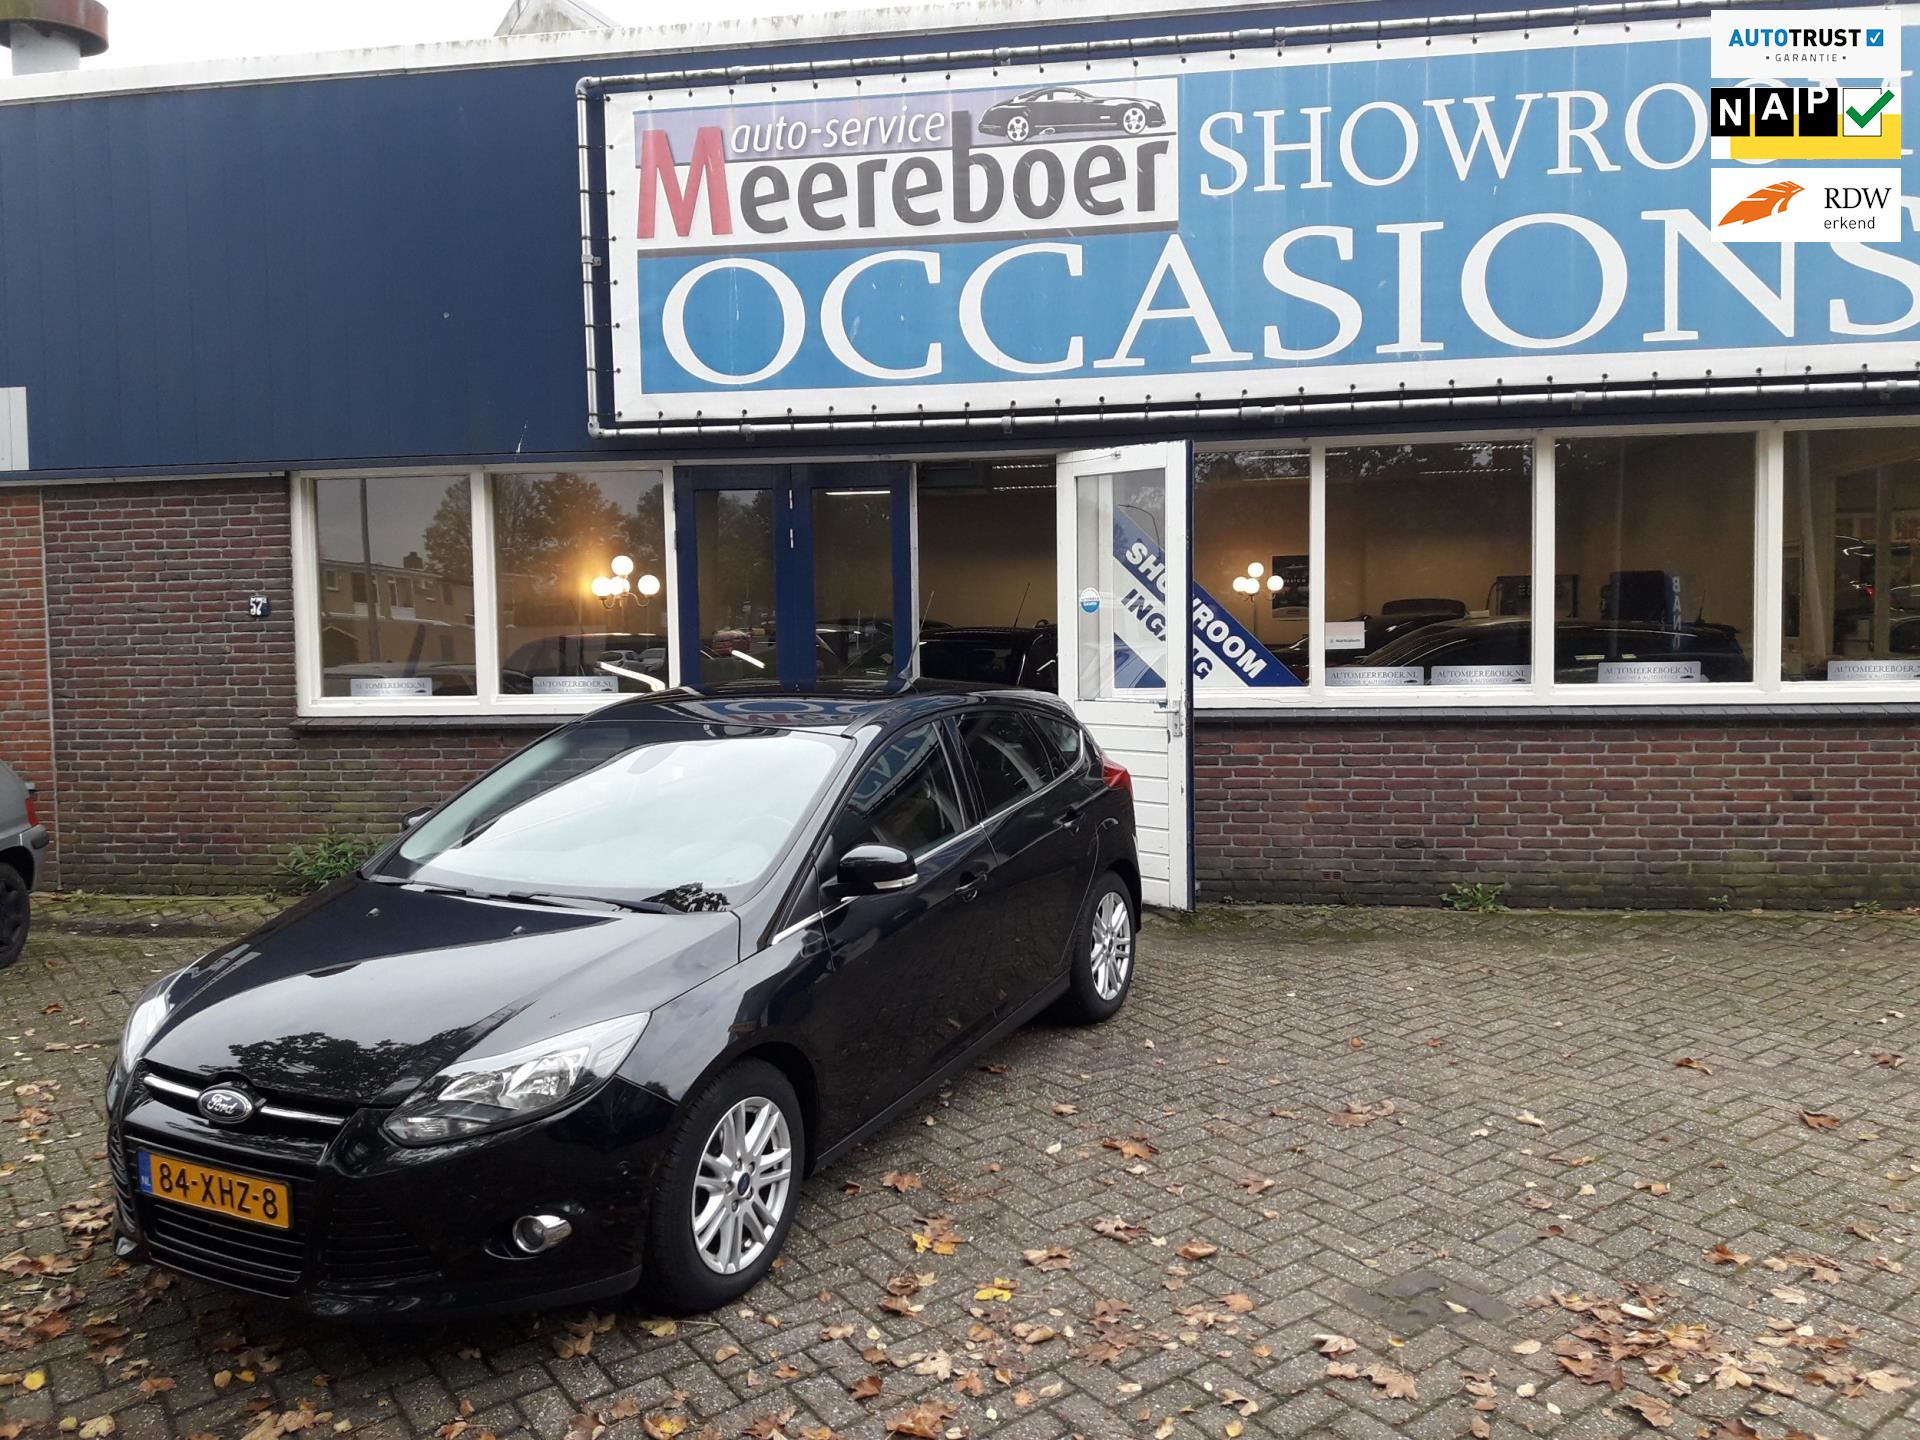 Ford Focus occasion - Autoservice Meereboer